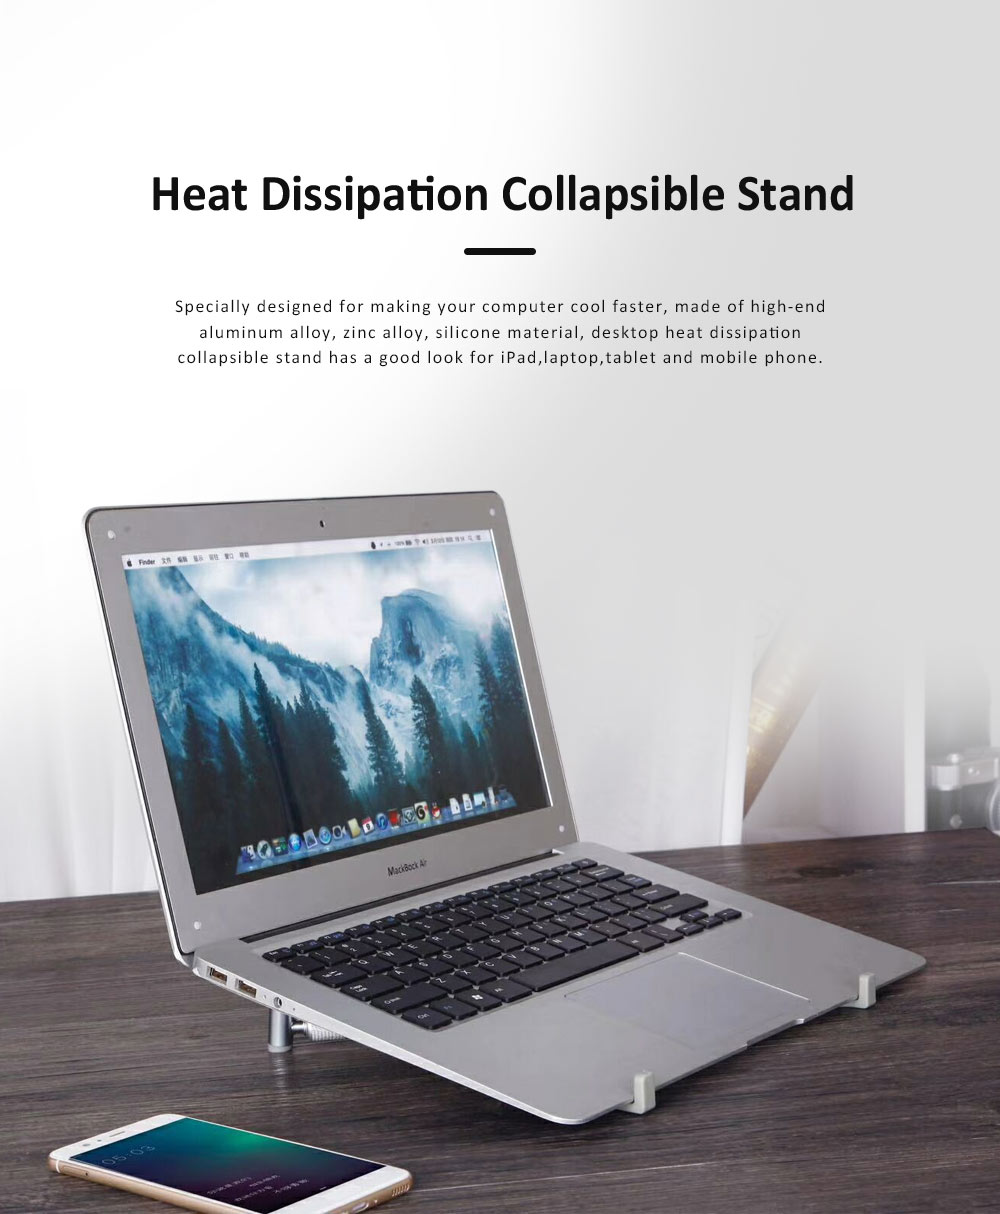 Heat Dissipation Collapsible Mount Holder, Aluminum Alloy Silicone Desktop Stand for iPad, Laptop, Tablet & Mobile Phone 0